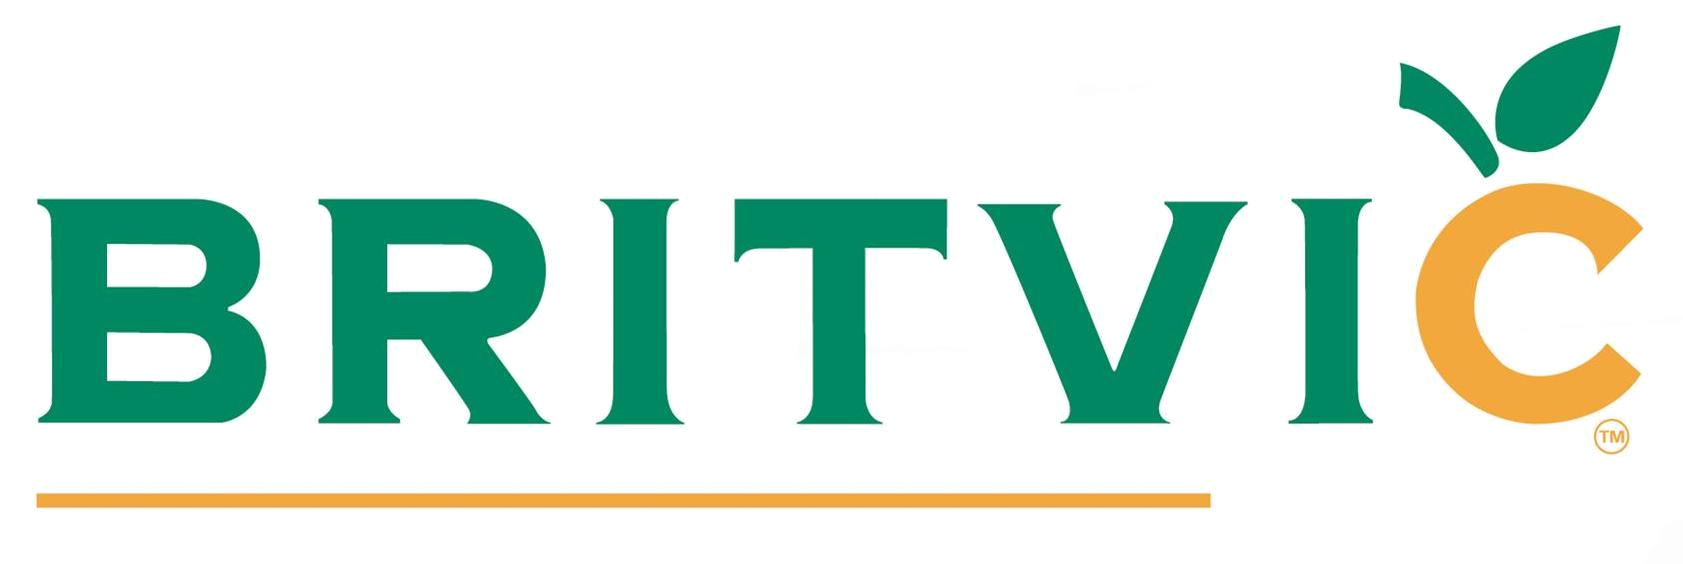 Britvic Green and Orange logo for video production page